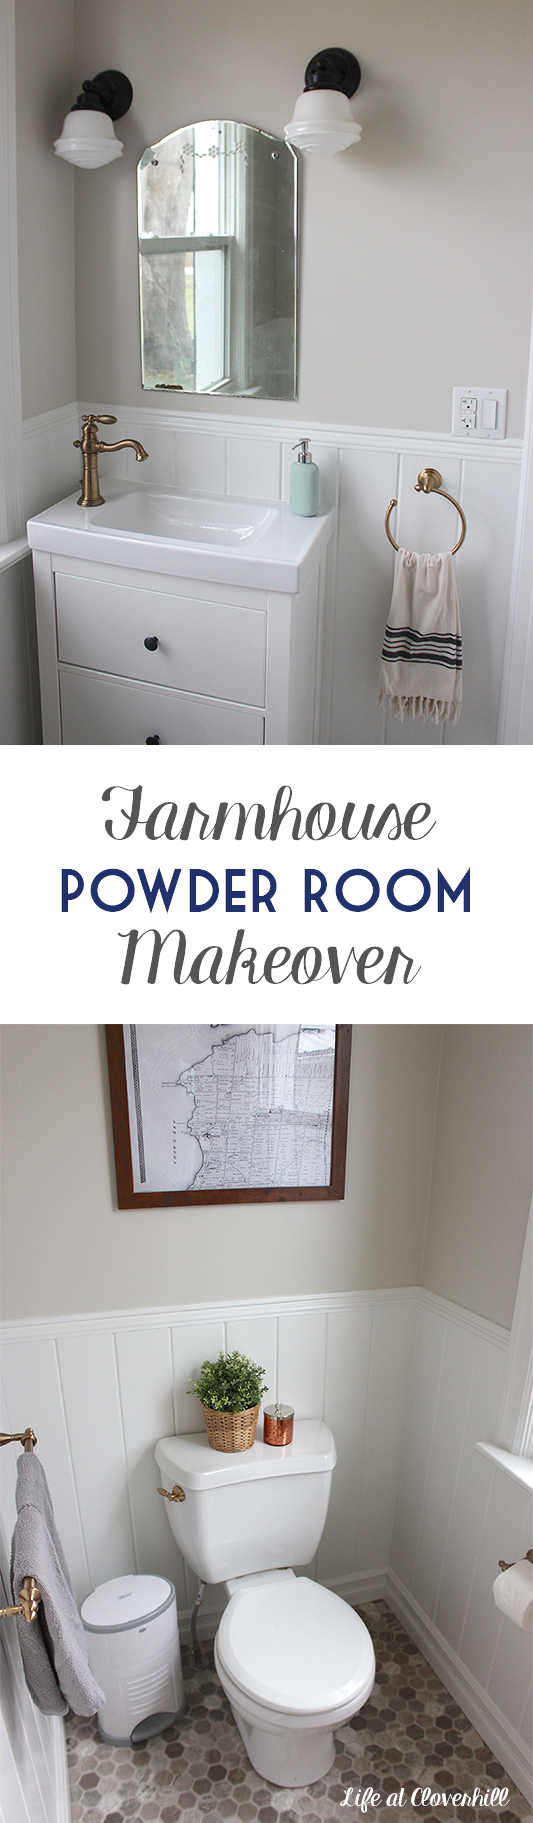 farmhouse-powder-room-makeover-renovation